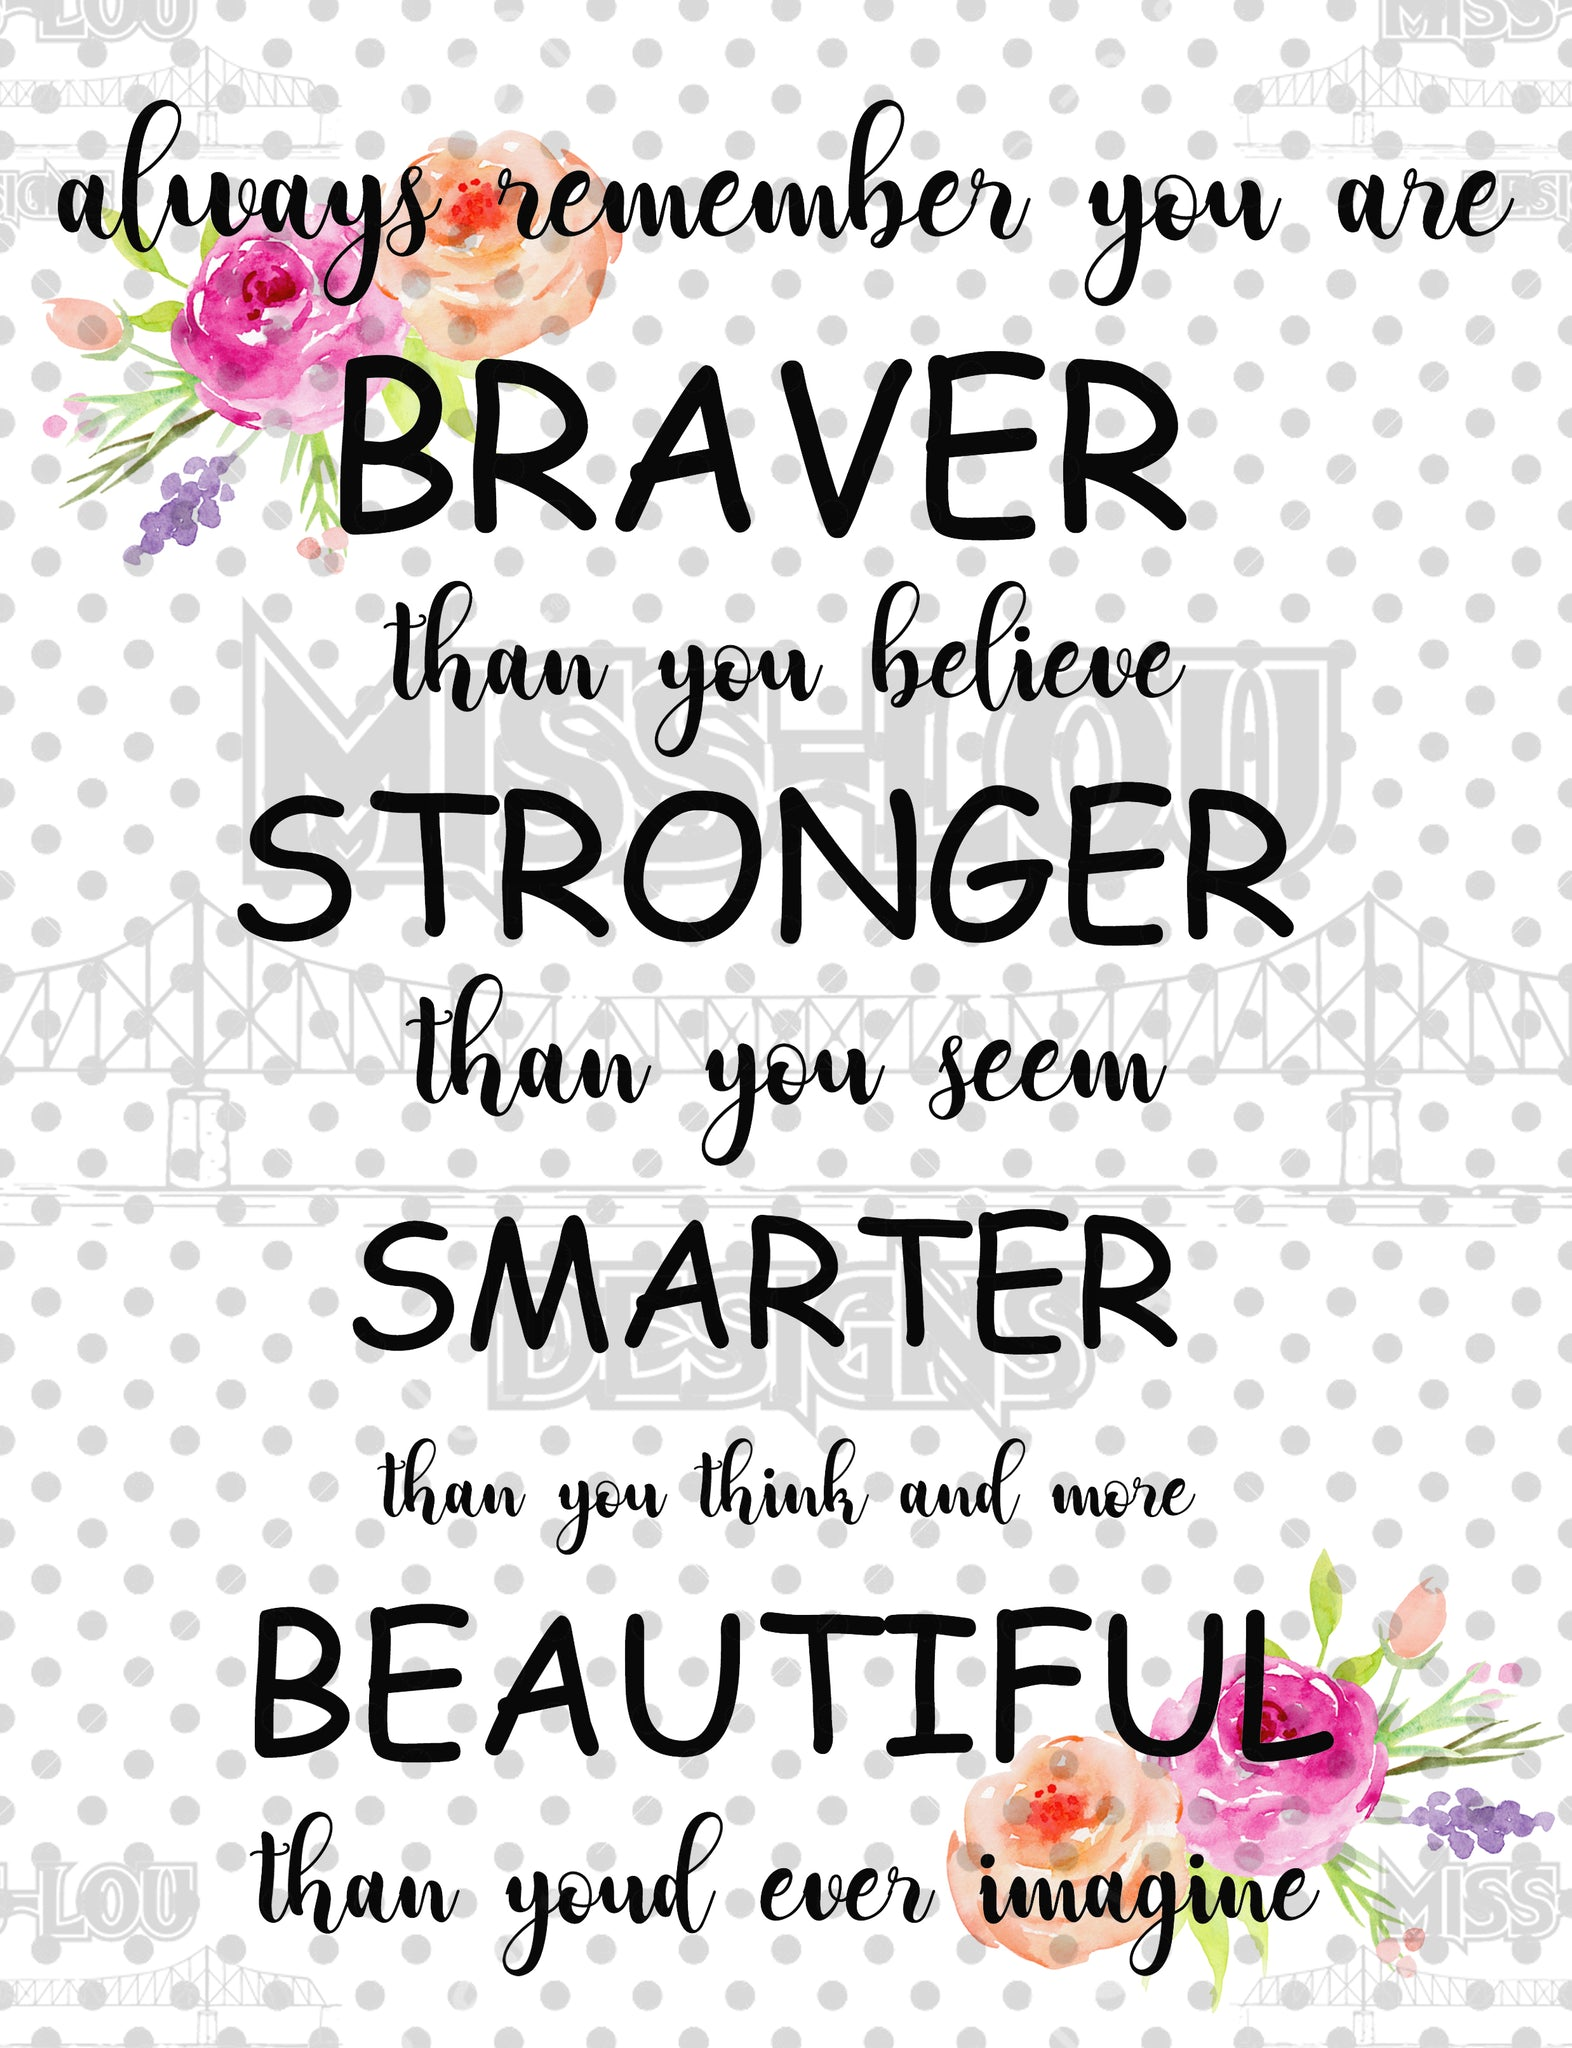 Braver Stronger with Flowers Digital Download